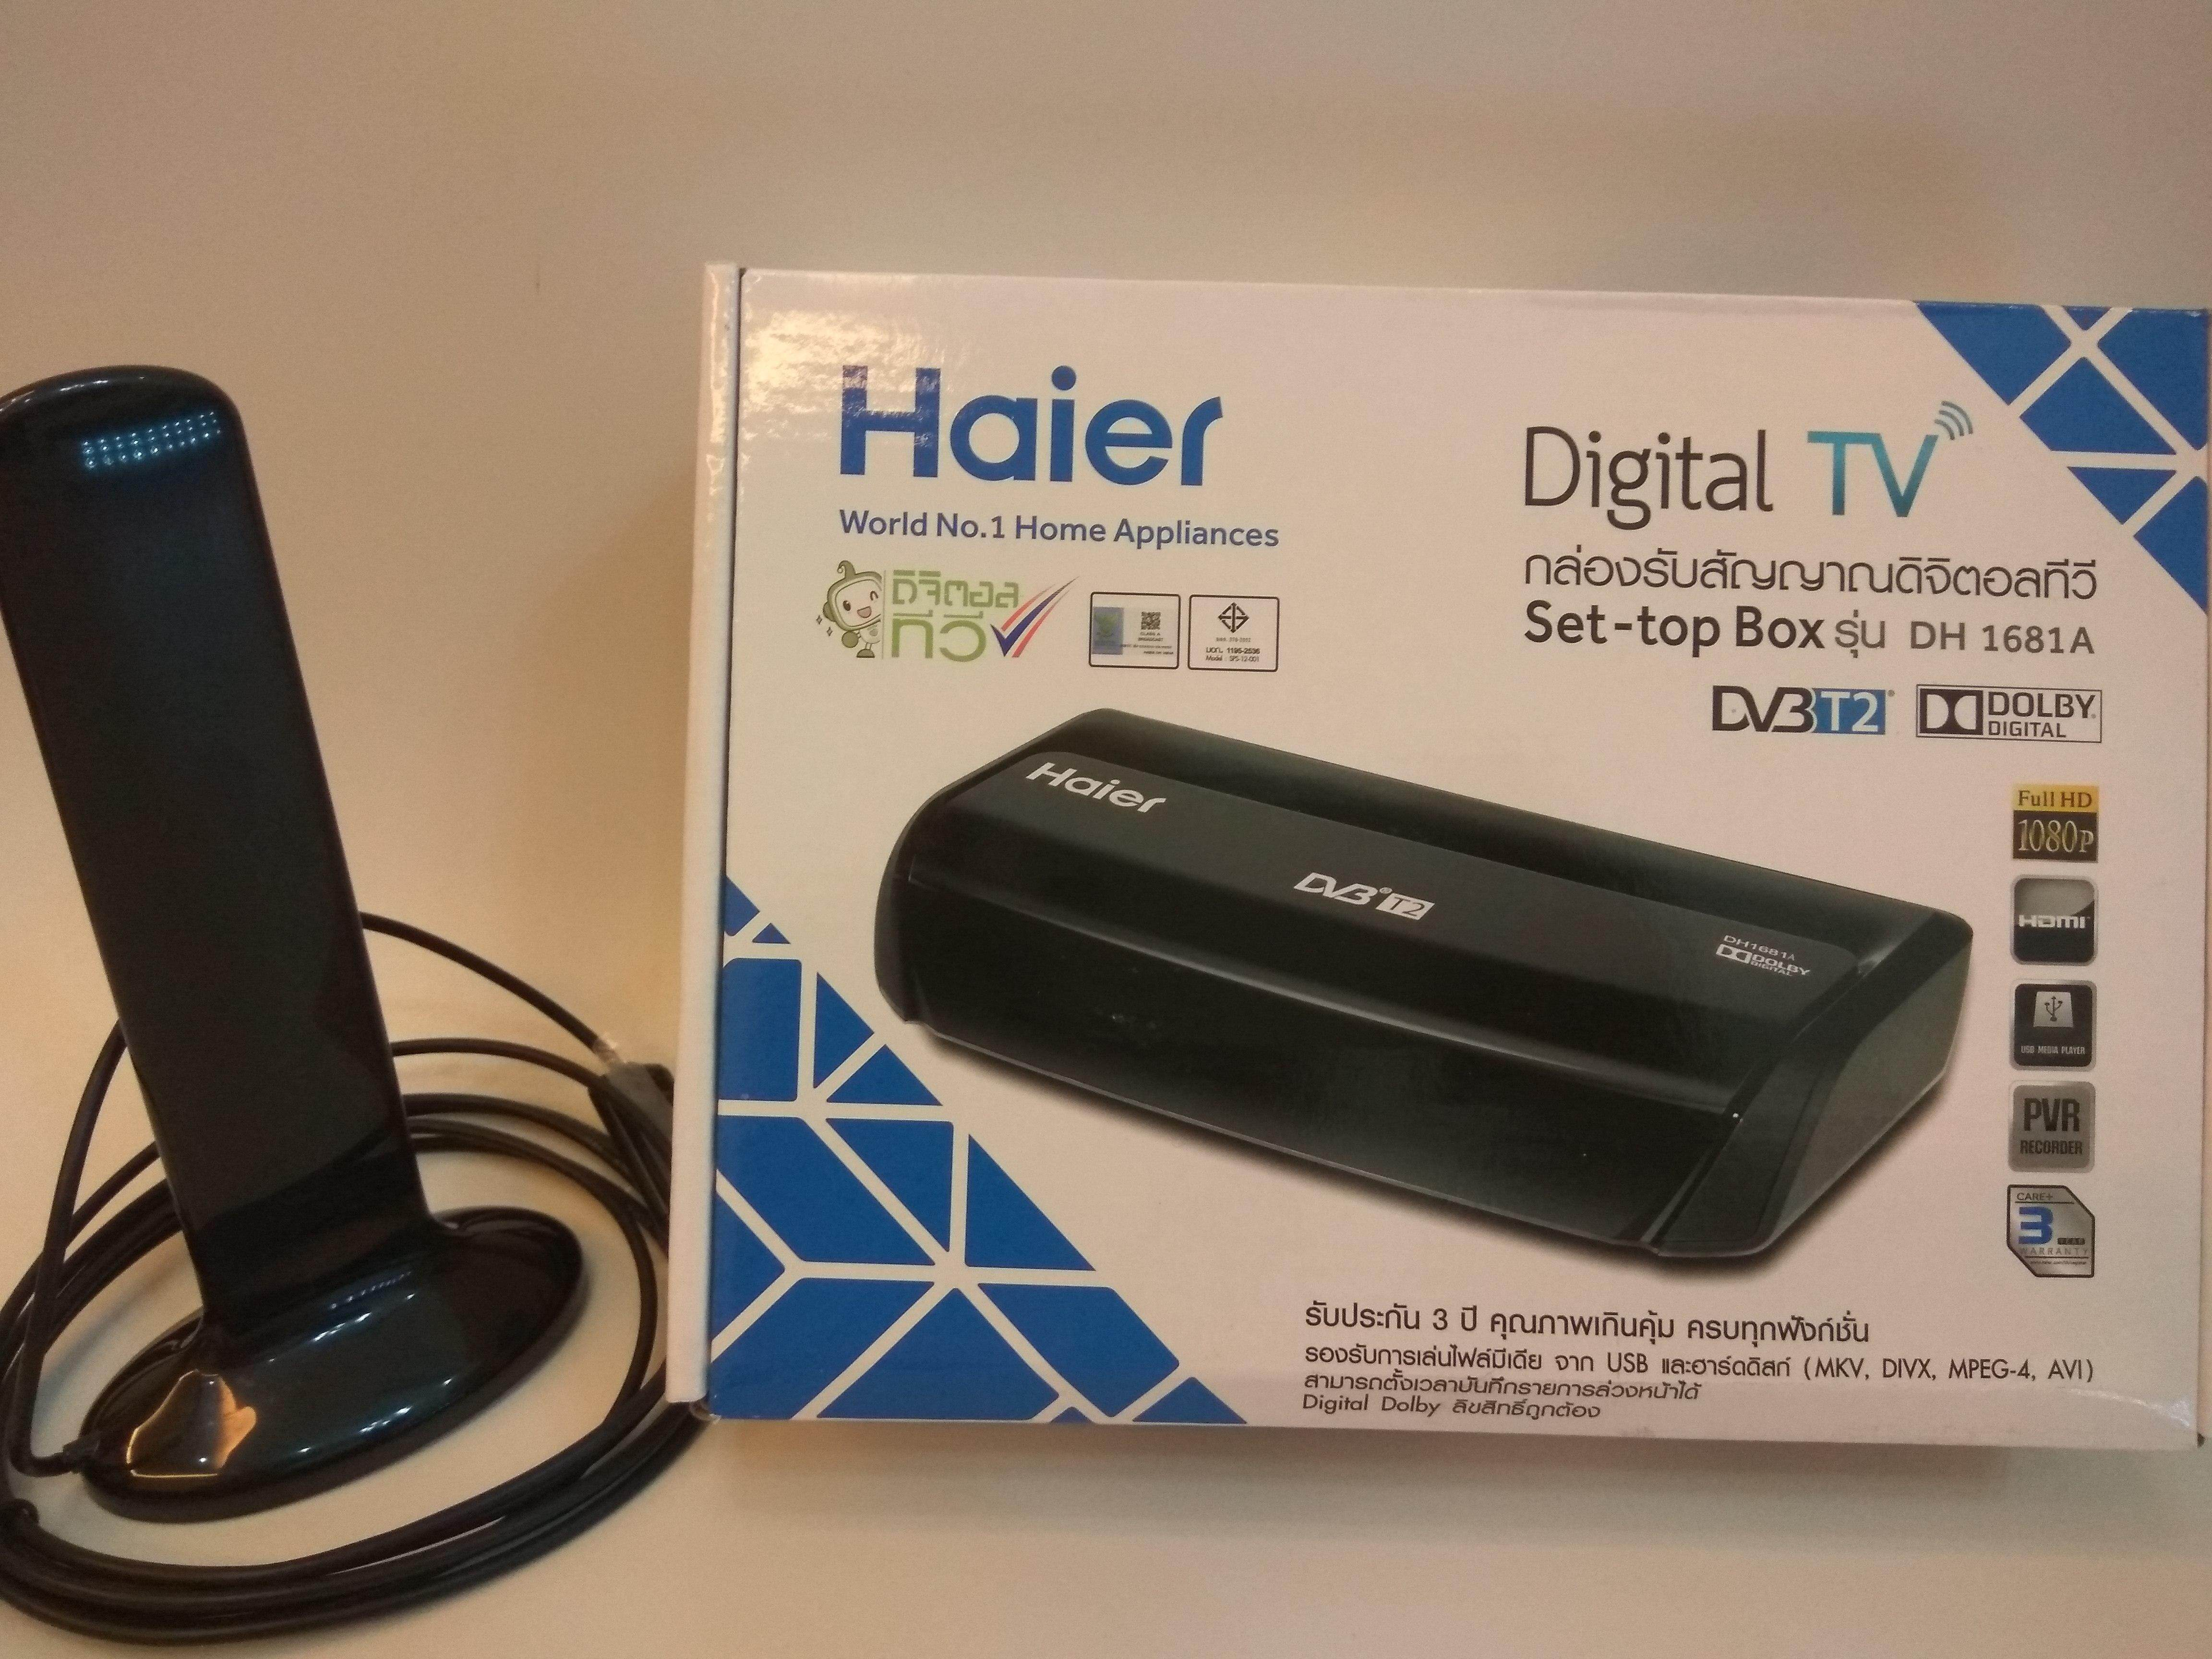 Haier Shop Tv Accessories Price In Malaysia Best No Picture And Audio On My Mytv Combo Set Decoder Indoor Antenna Suitable For Flat Apartment